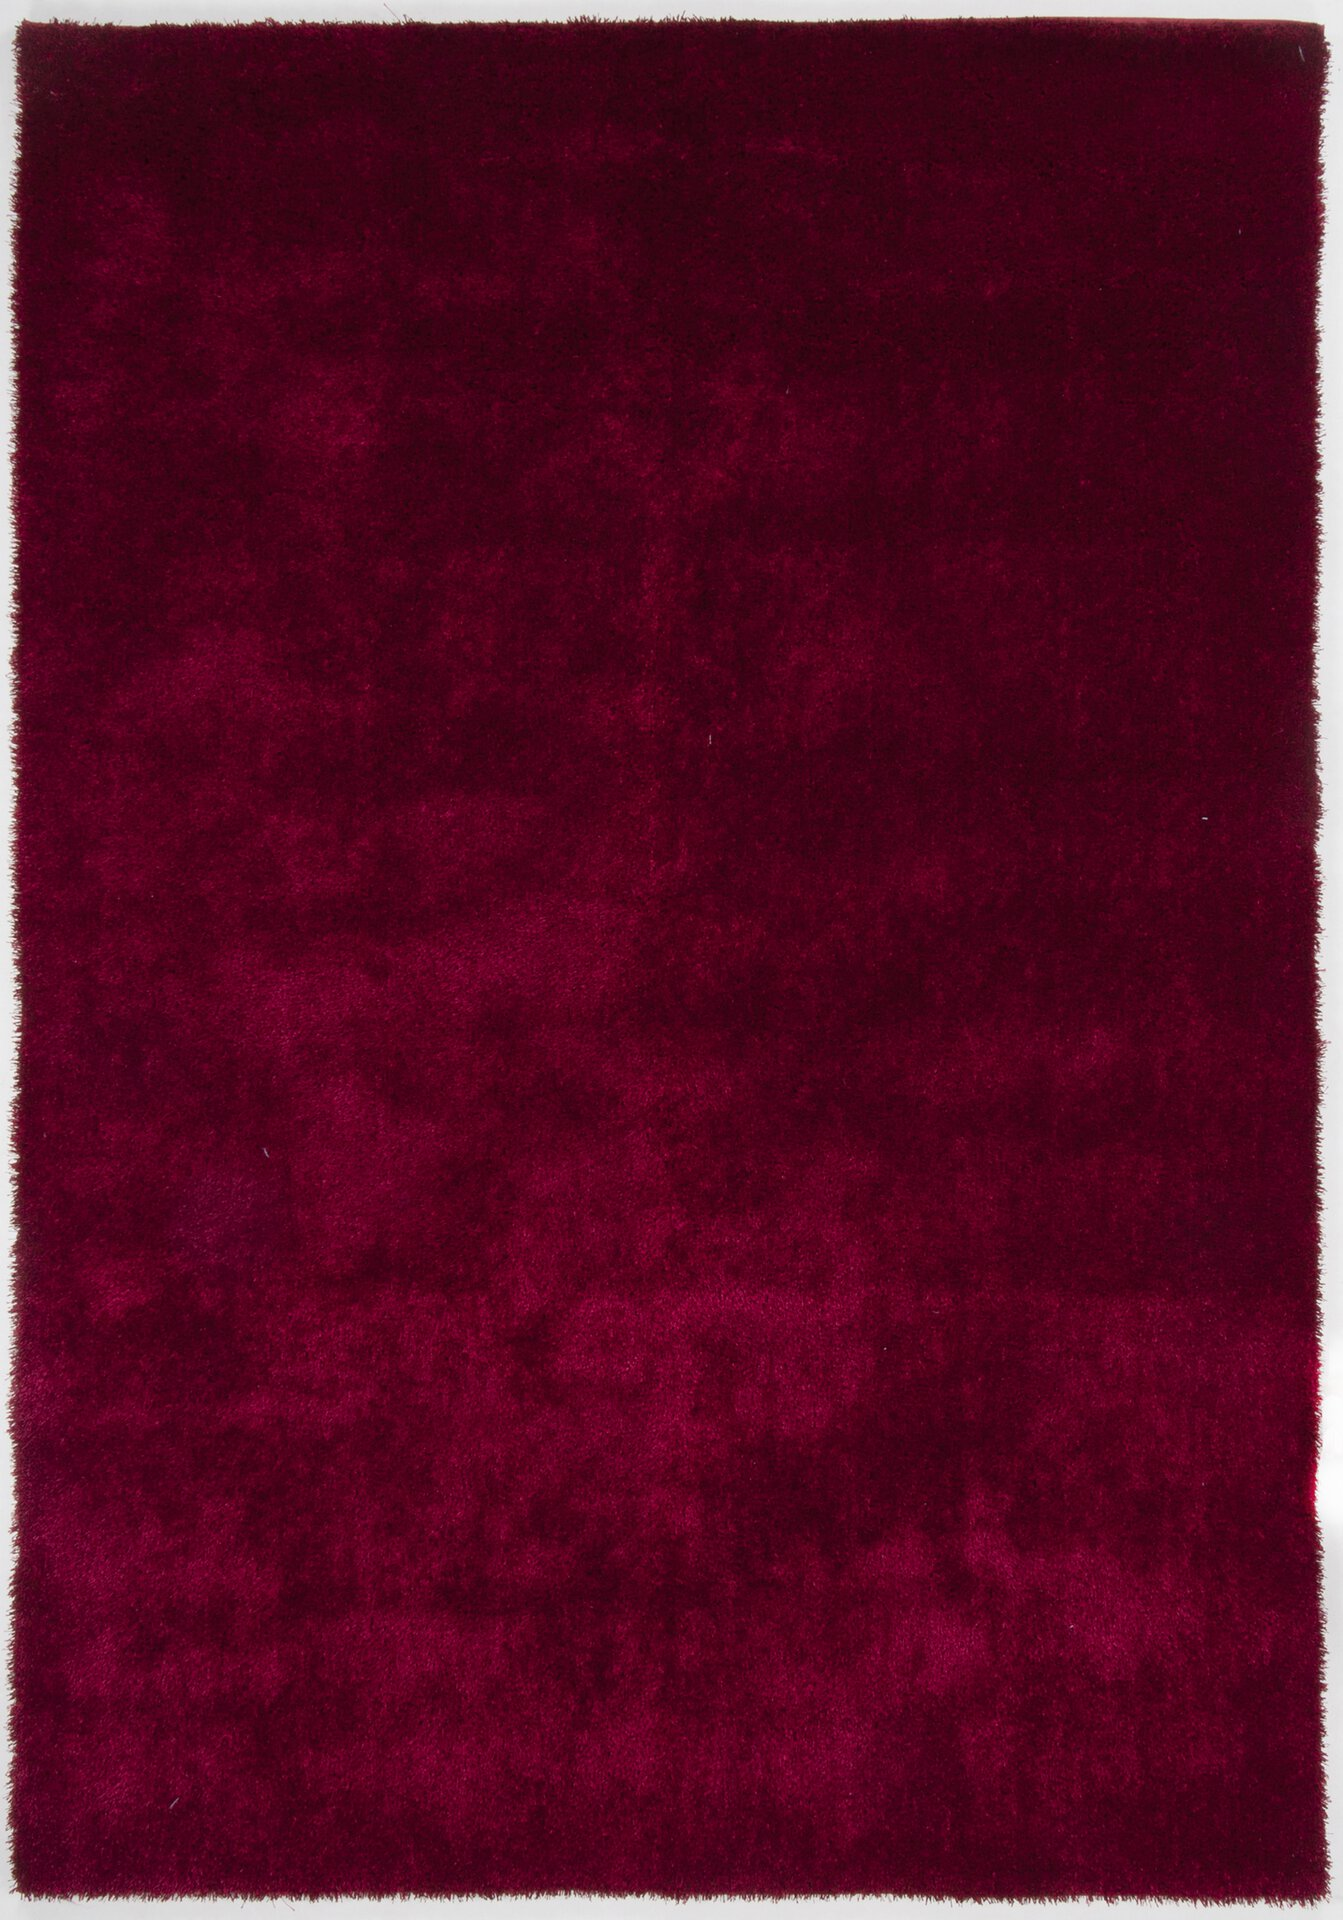 Handtuftteppich Alessandro Gino Falcone Textil rot 50 x 80 cm